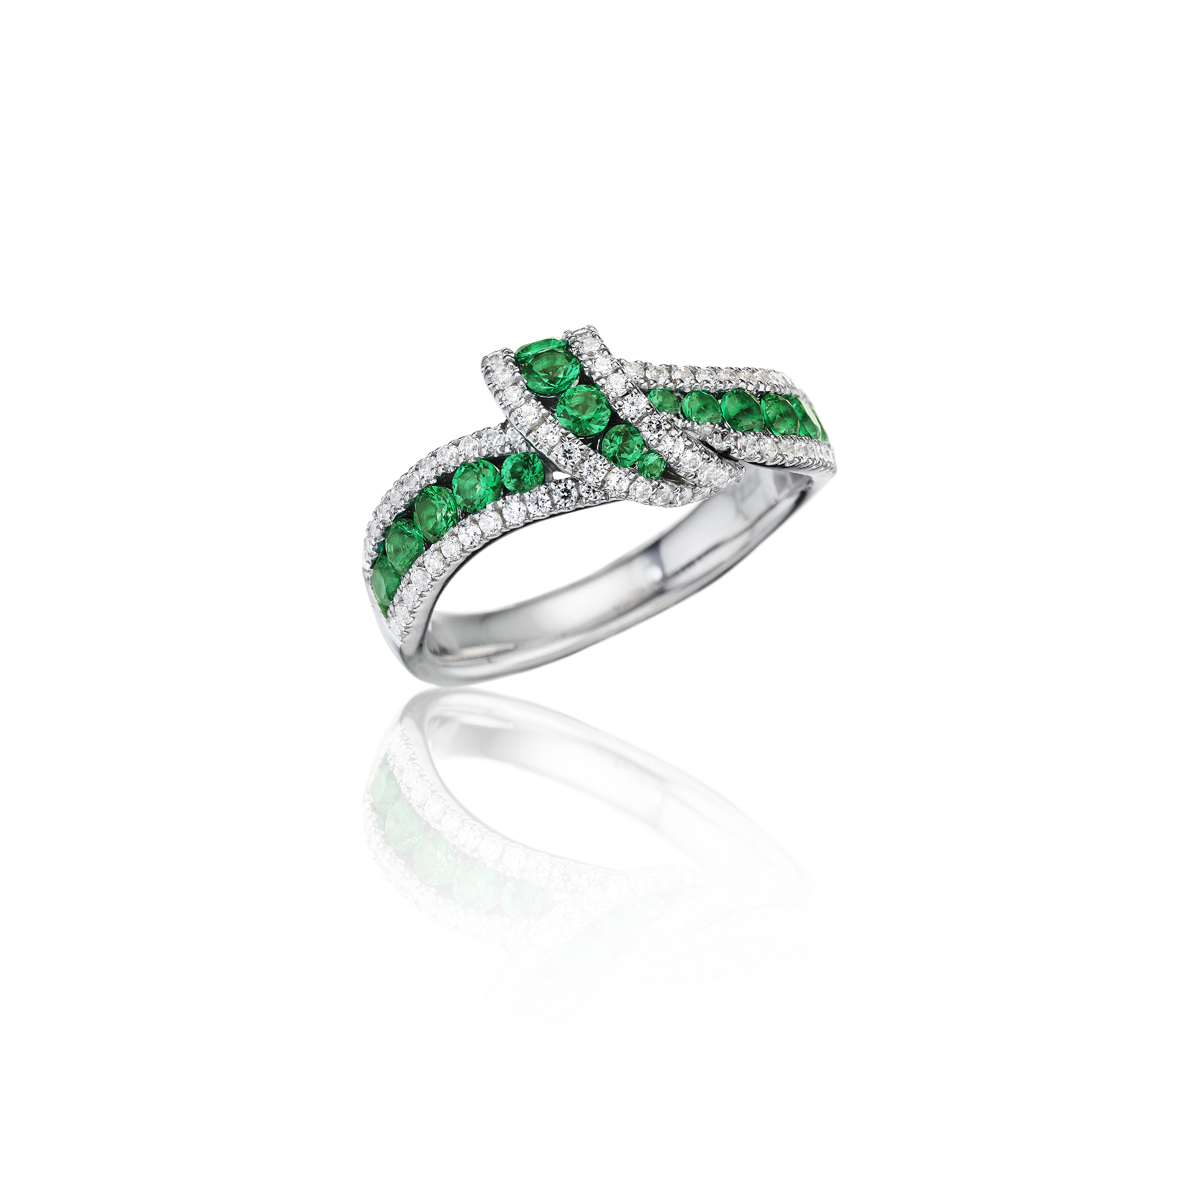 Wrap Me Up Emerald and Diamond Twist Ring - This wrap me up emerald and diamond twist ring comes in a variety of material types like 14k white gold, yellow gold, rose gold and can be customized with your jeweler. Fana diamond earrings are perfect for that special woman in your life.